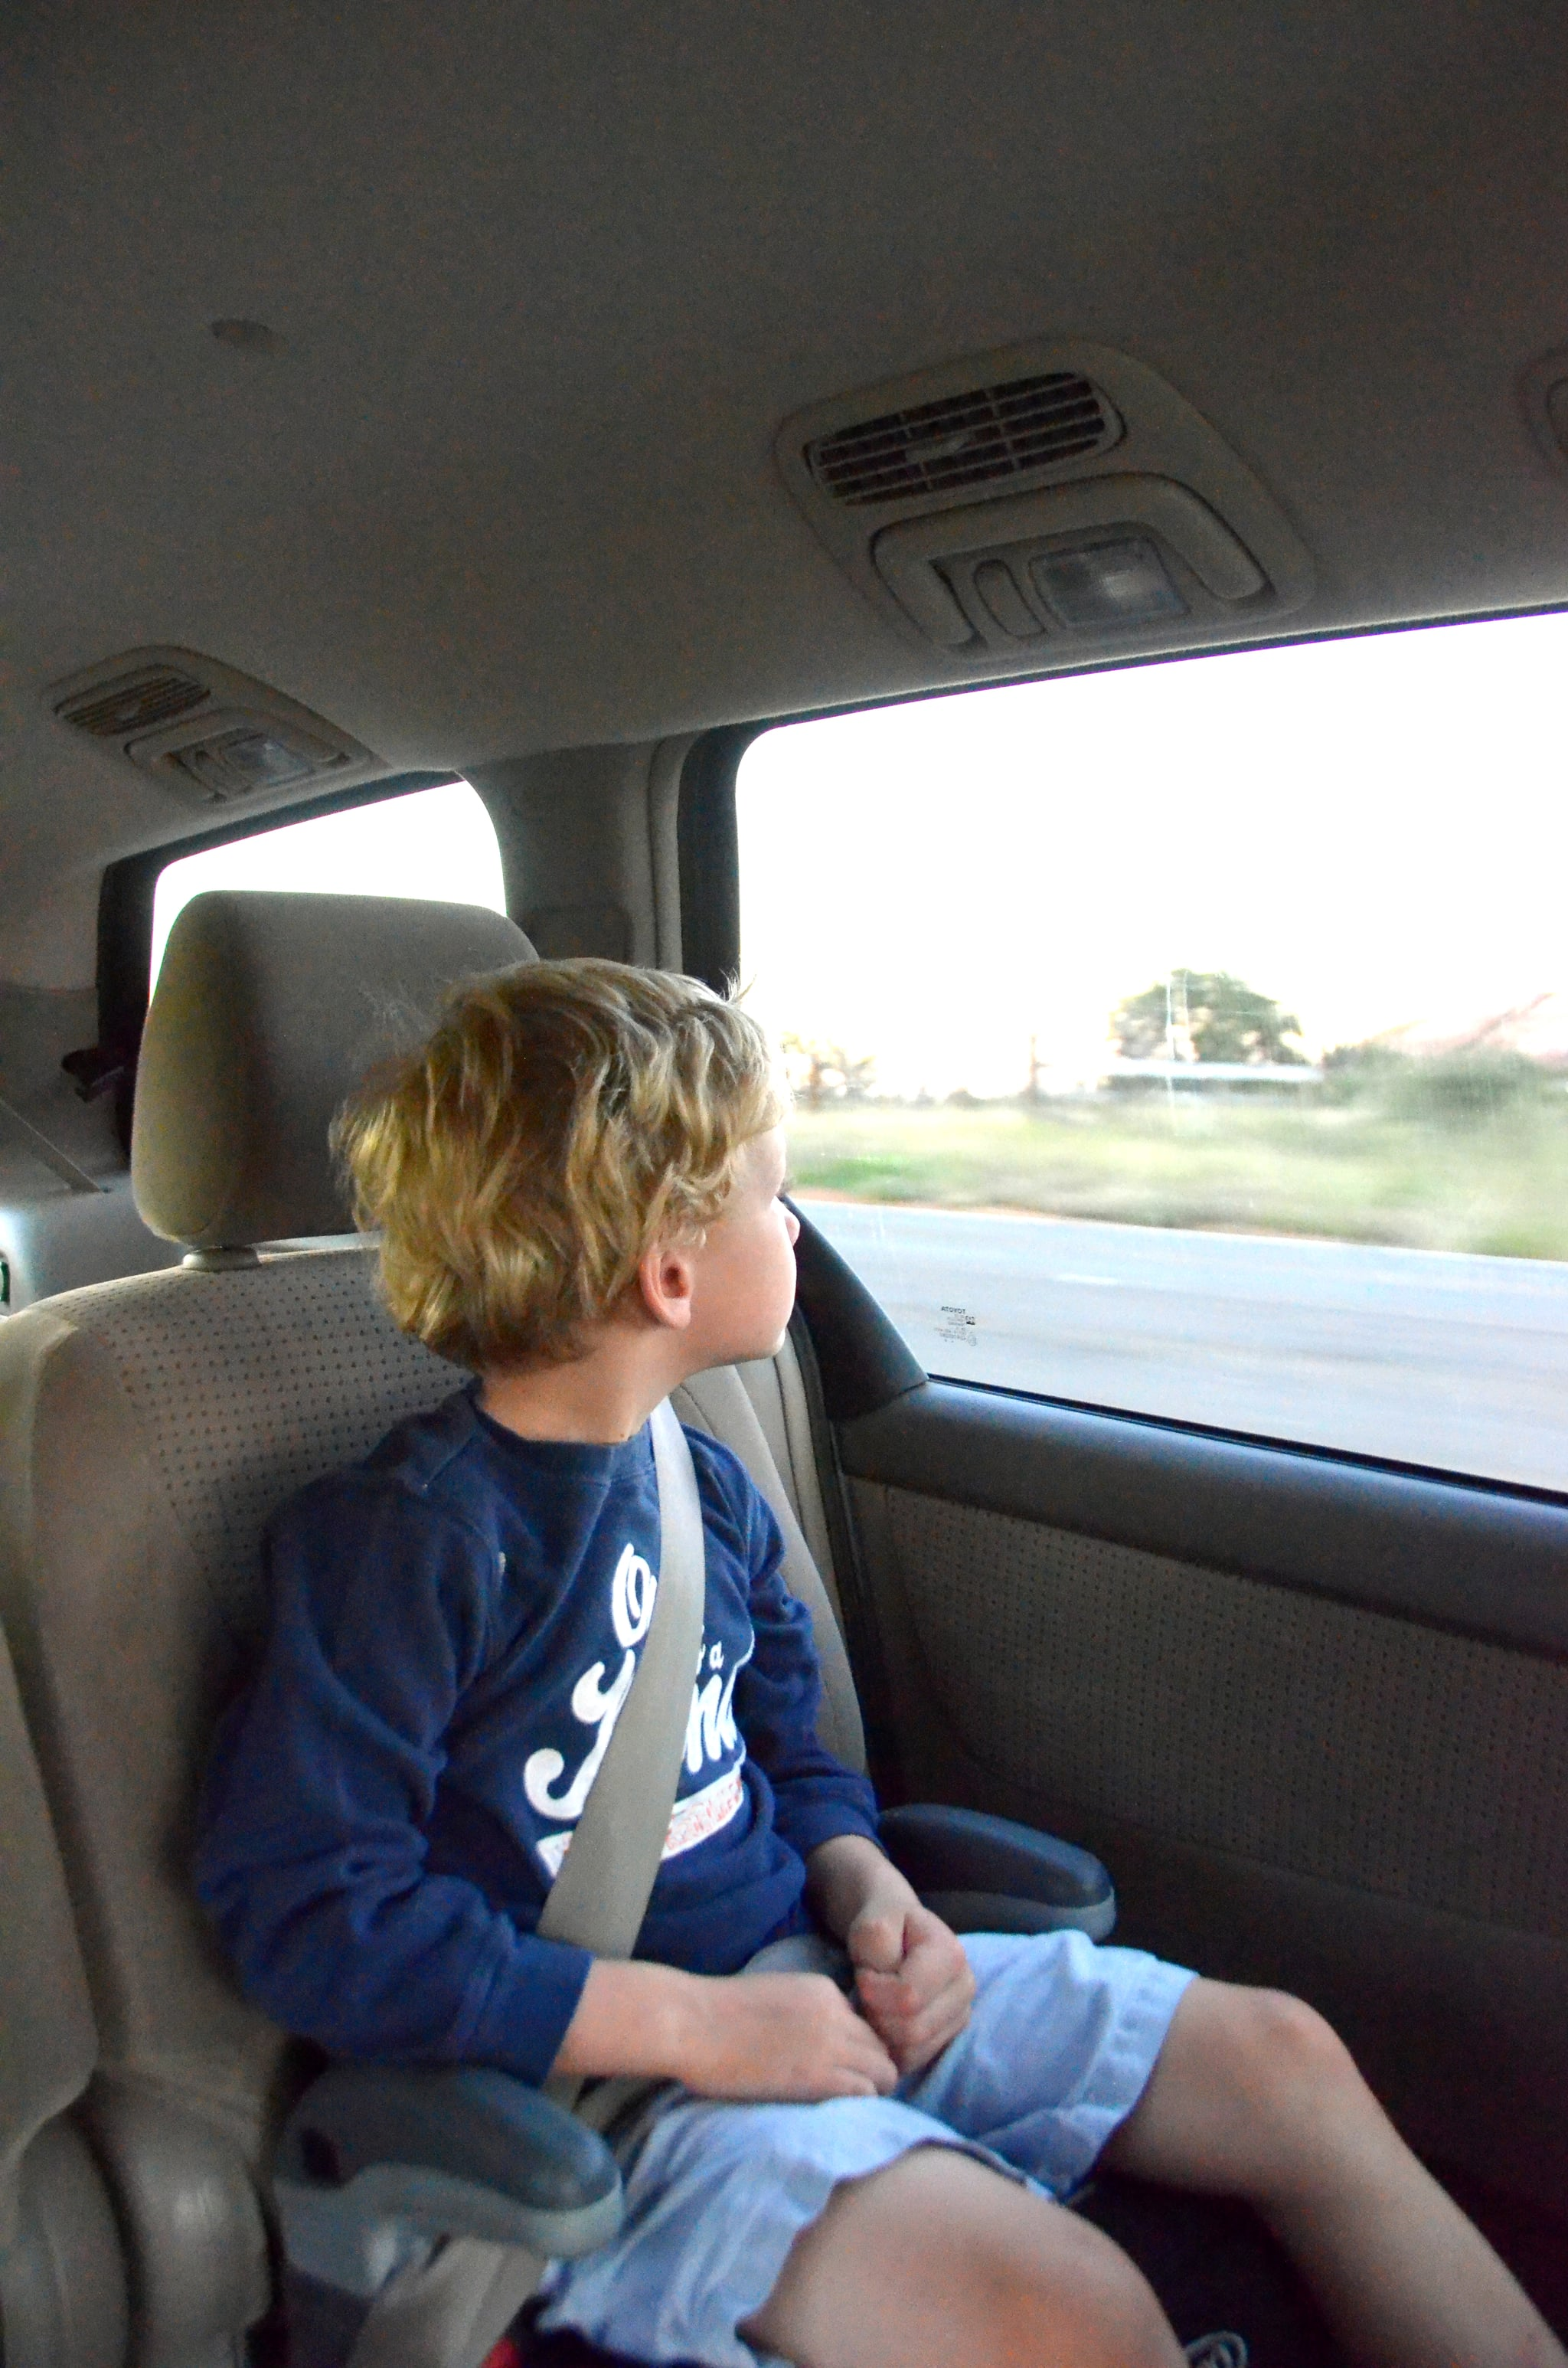 A young boy sits in a booster seat looking out the window of a moving vehicle.